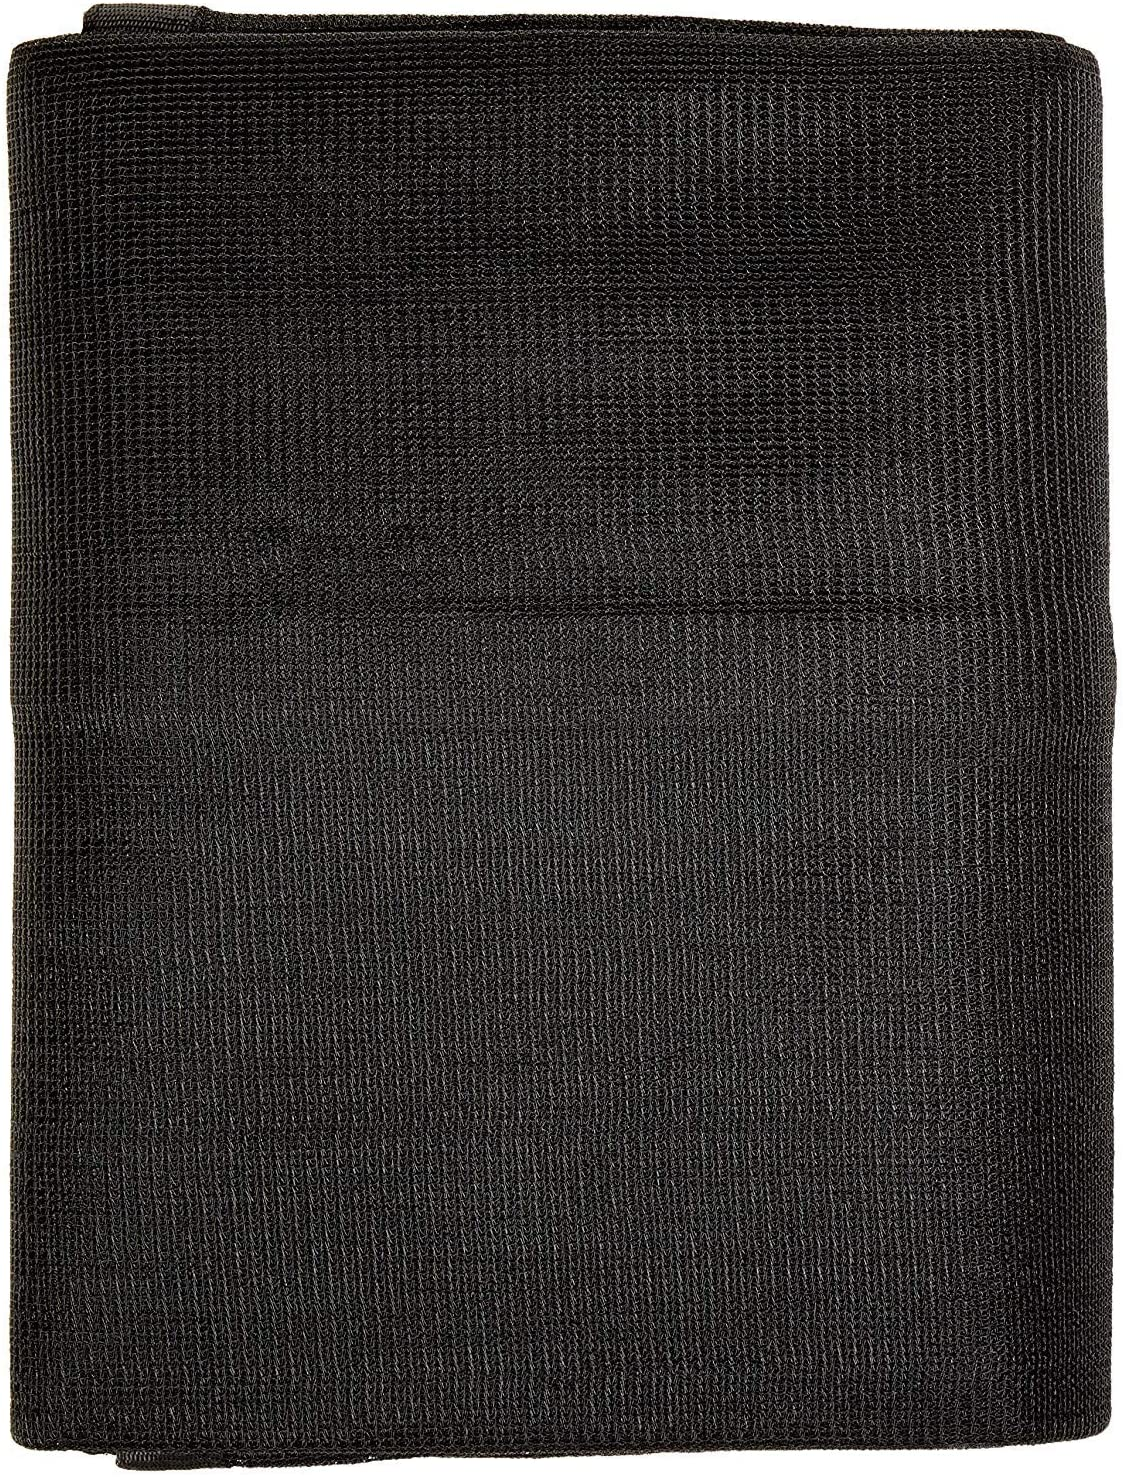 Windscreensupplyco Heavy Duty Black Knitted Gromm with Mesh Tarp Luxury goods Challenge the lowest price